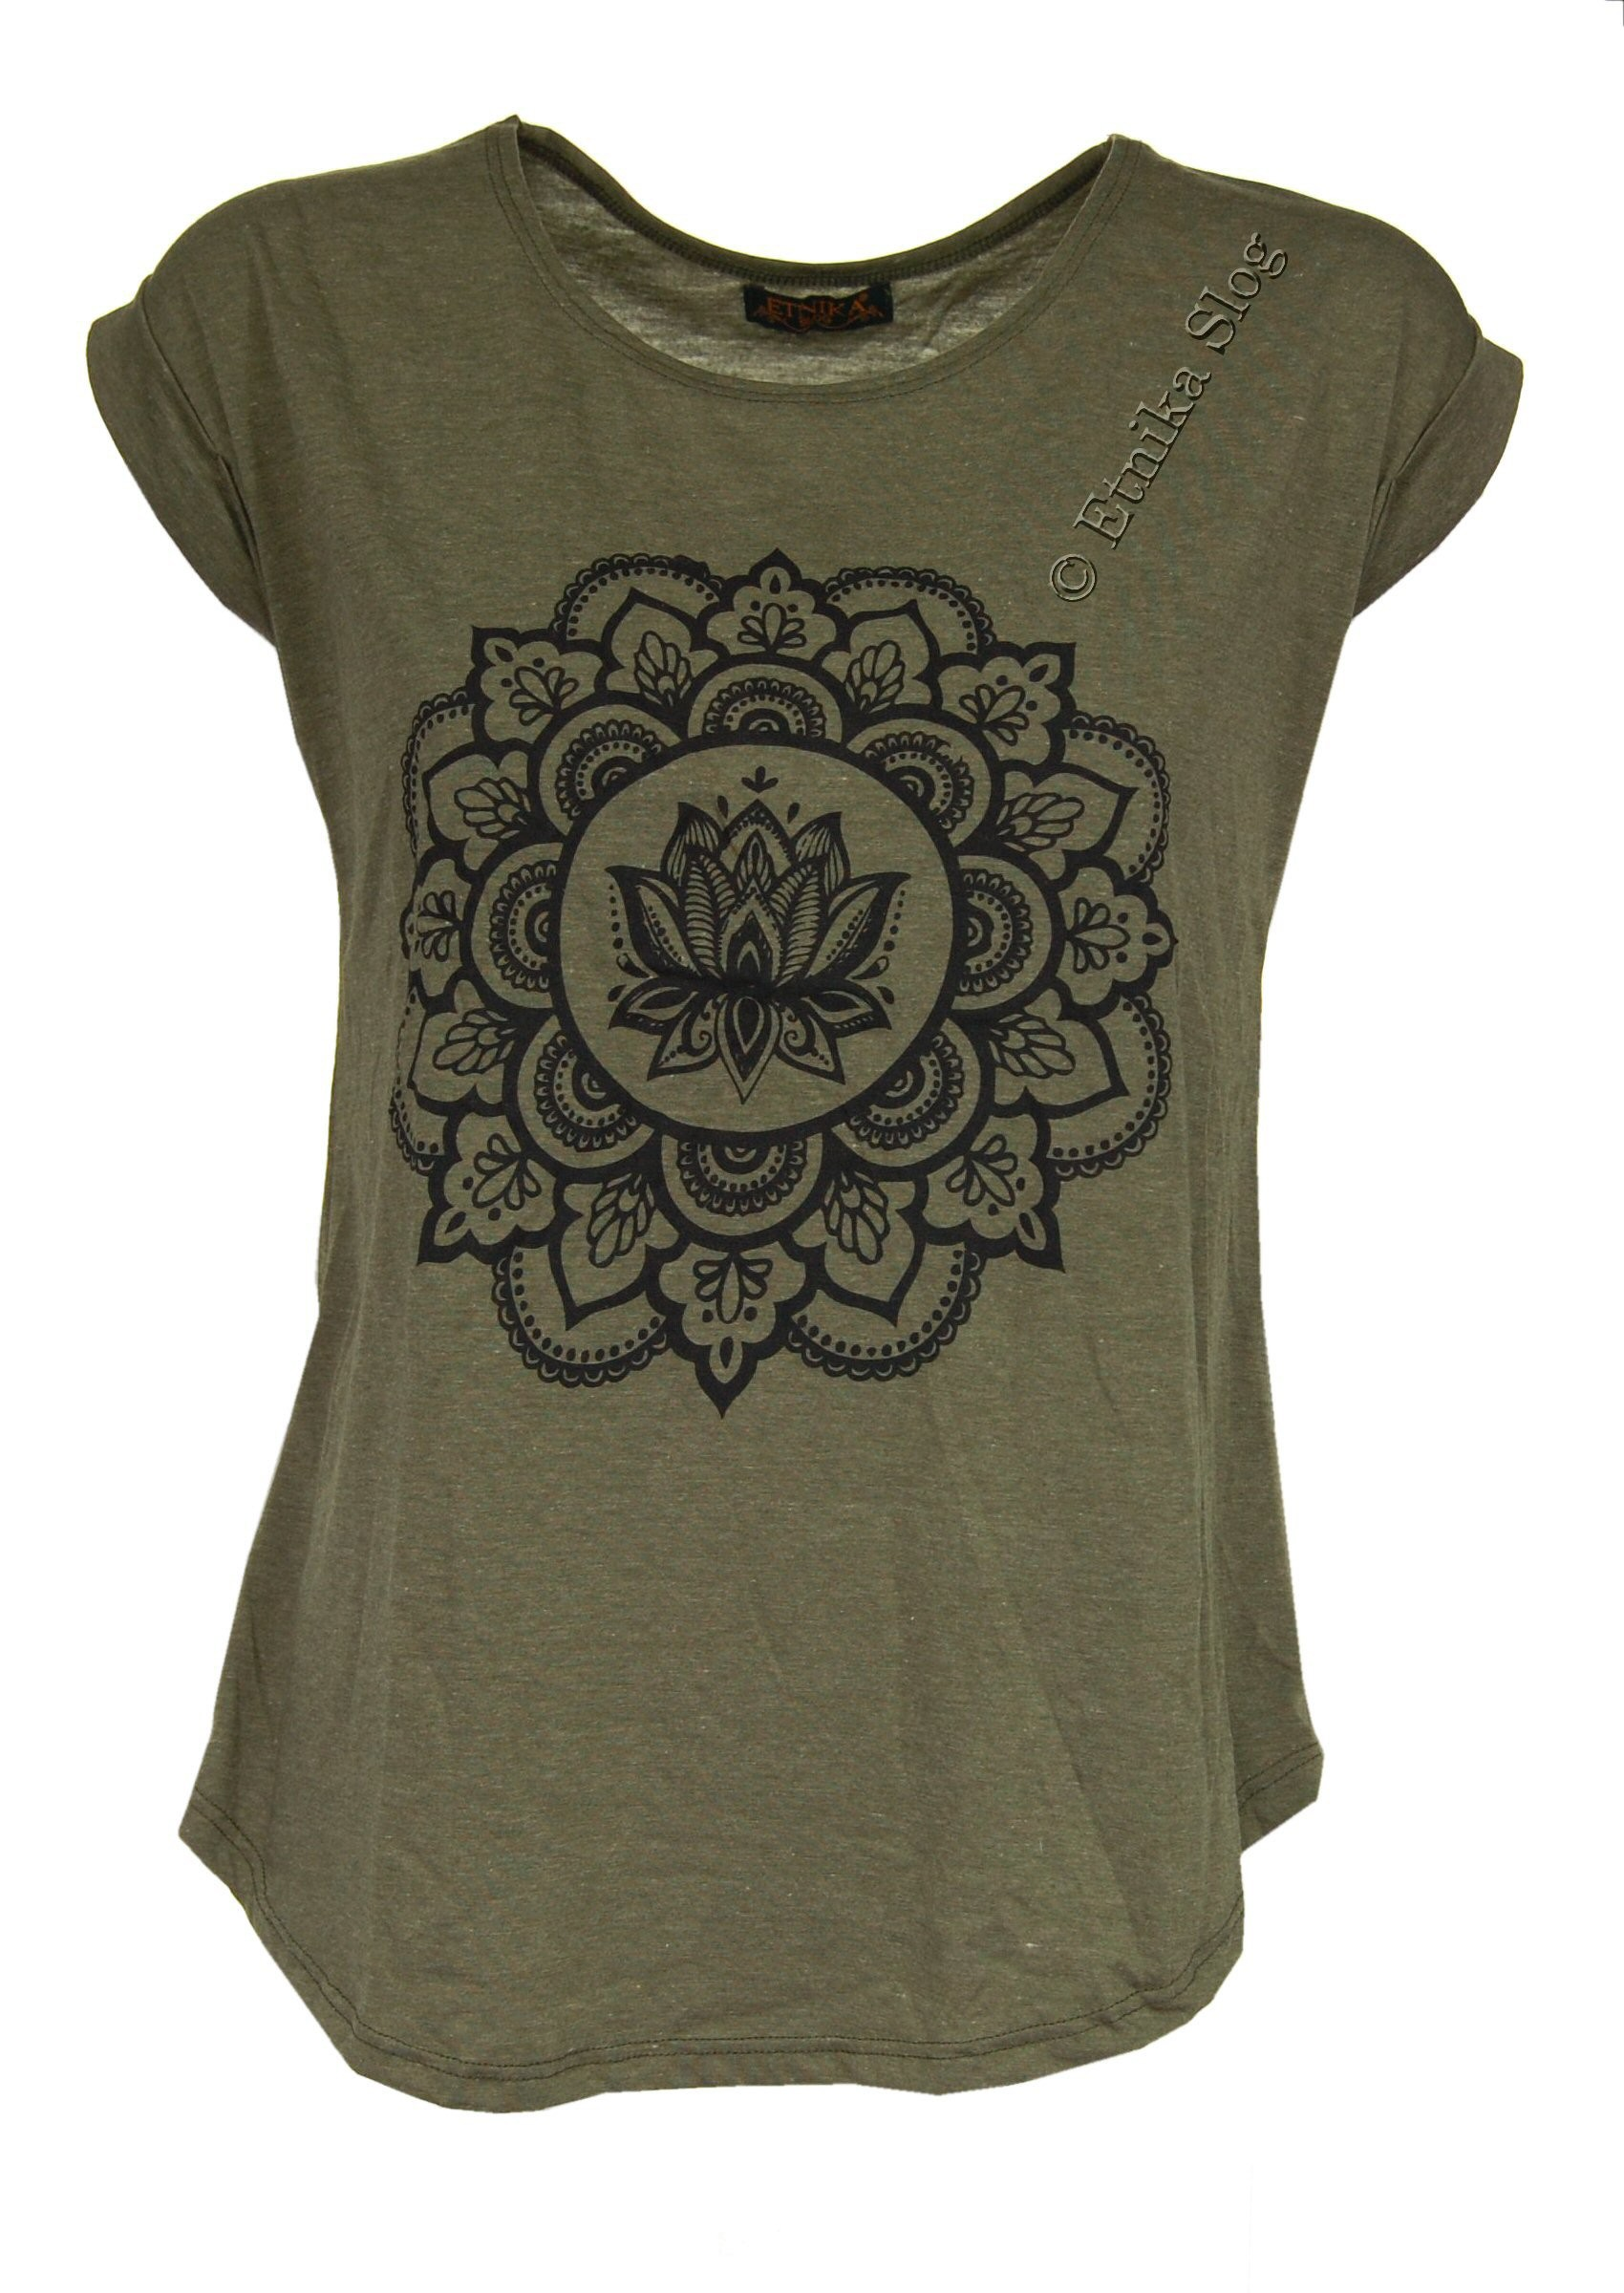 PRINTED T-SHIRTS AB-BCT08-27 - Oriente Import S.r.l.